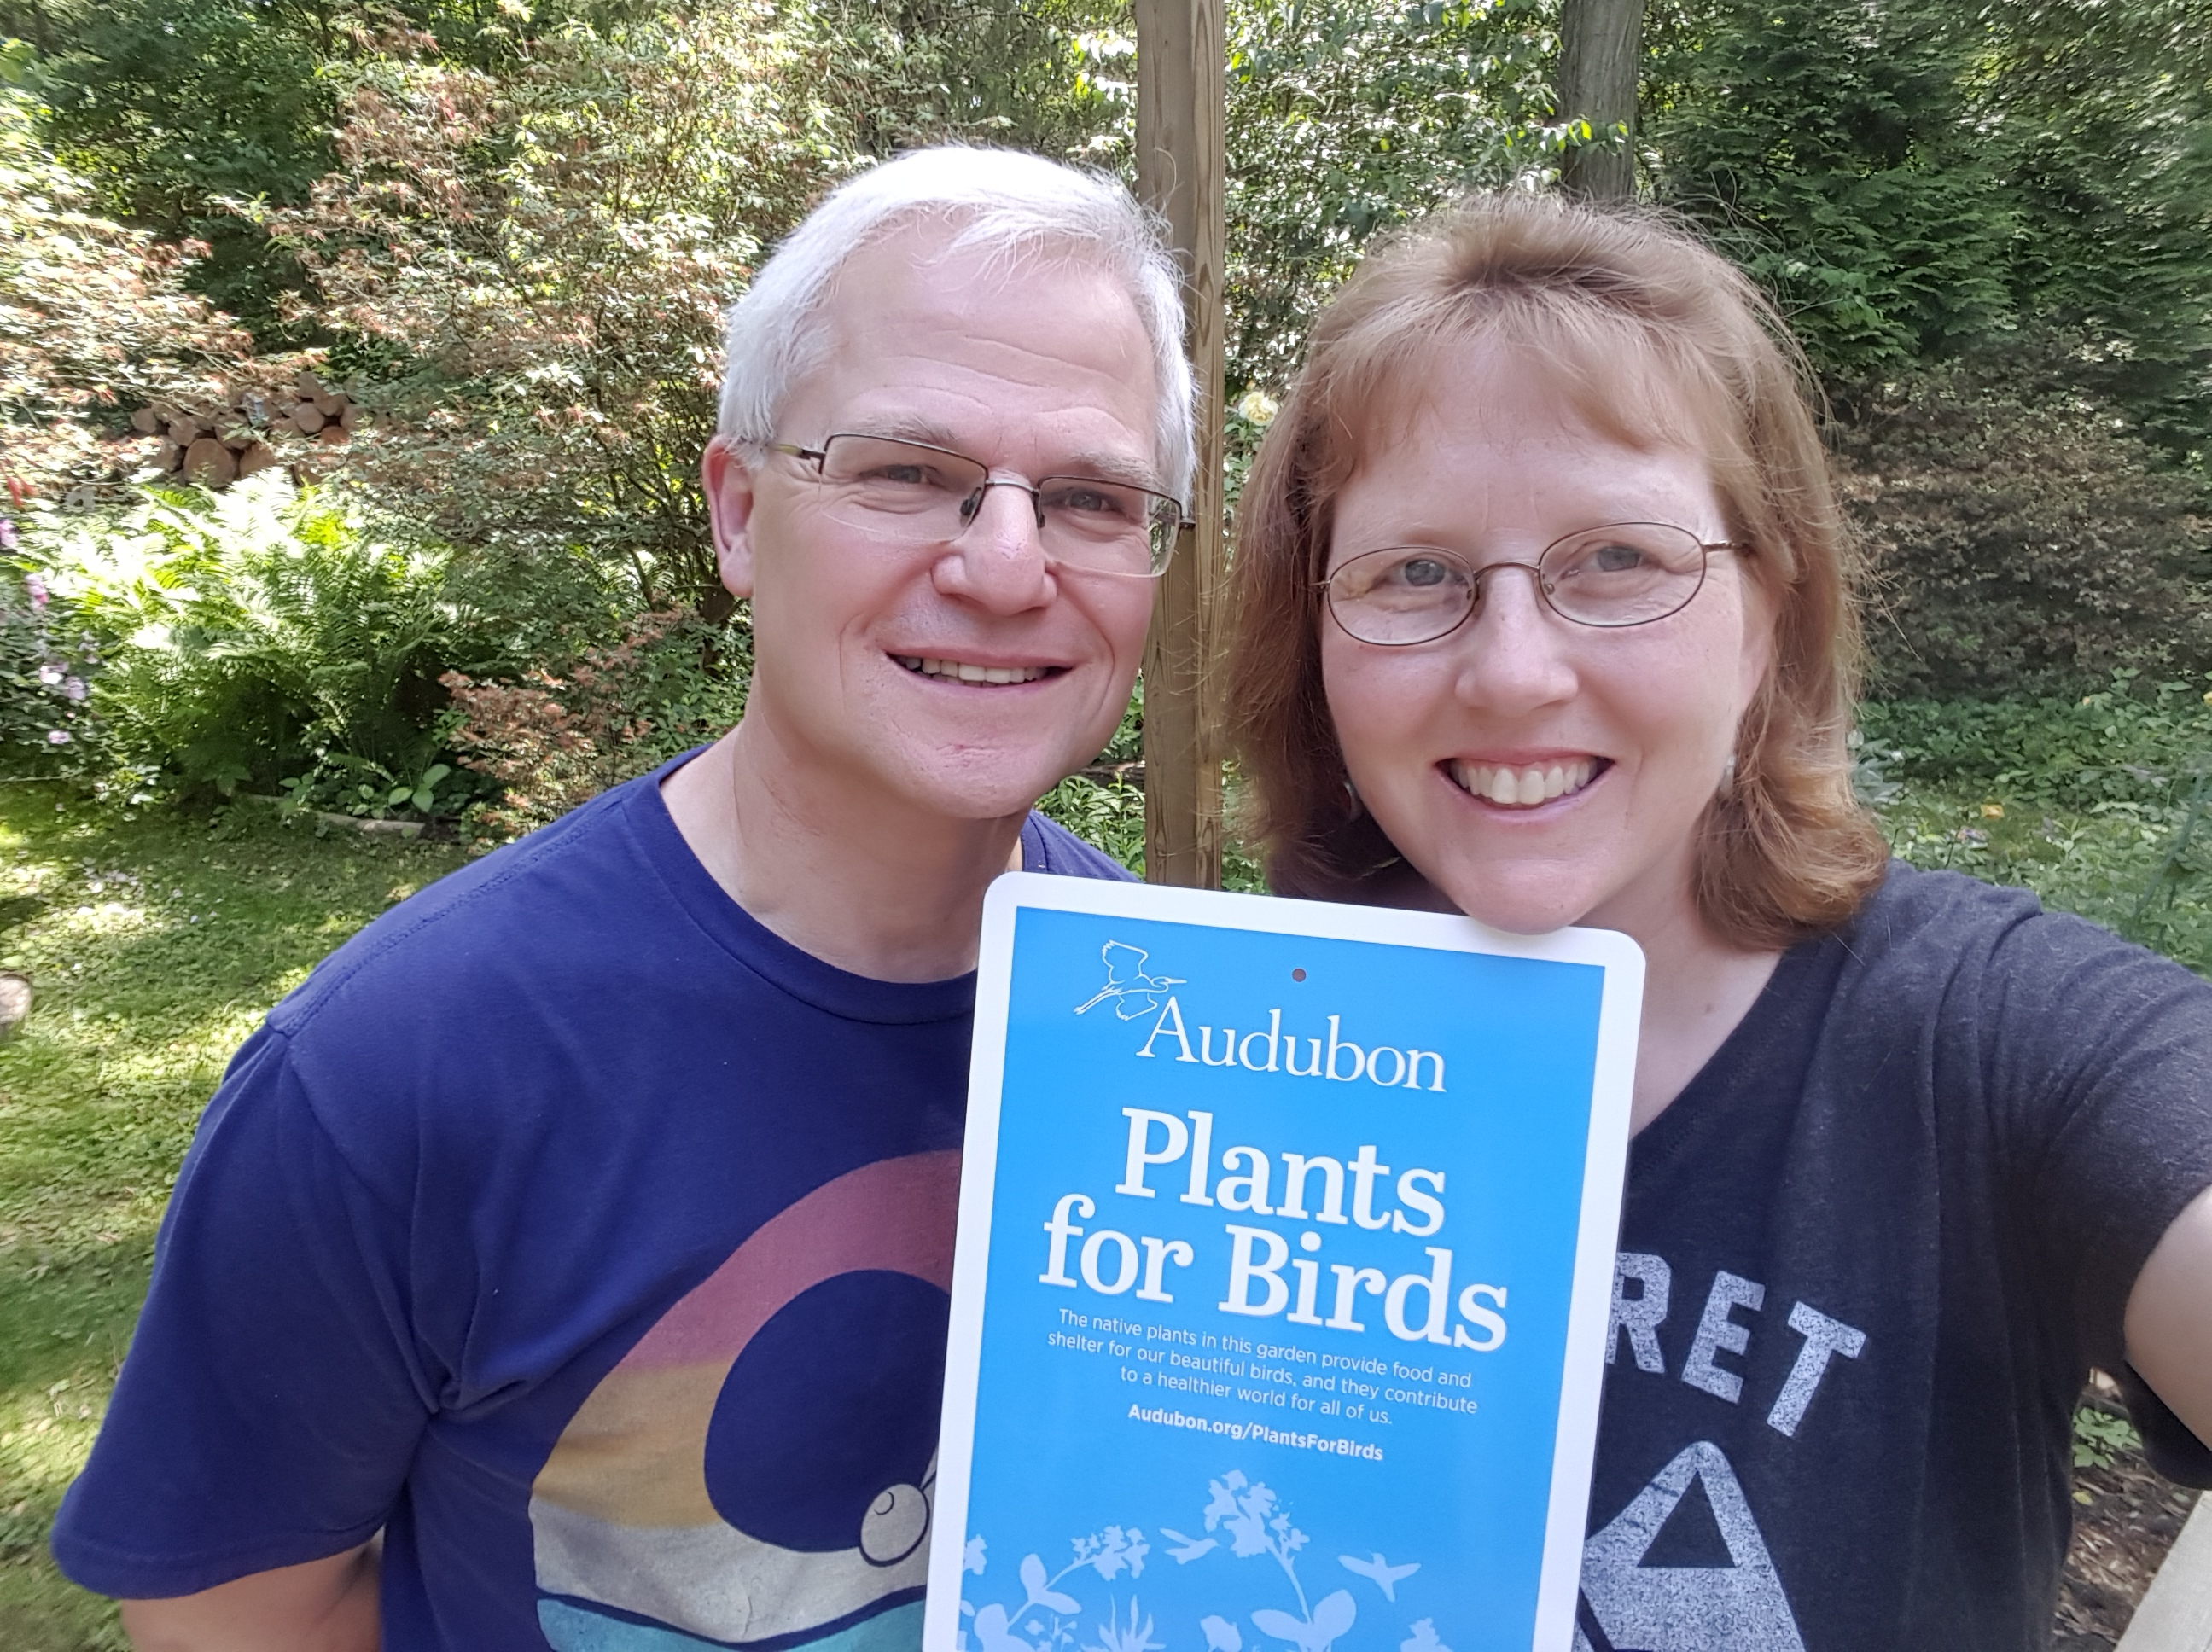 Andreas and I recieved recognition from the Audubon Society for our natural habitats and attention to planting for the birds.